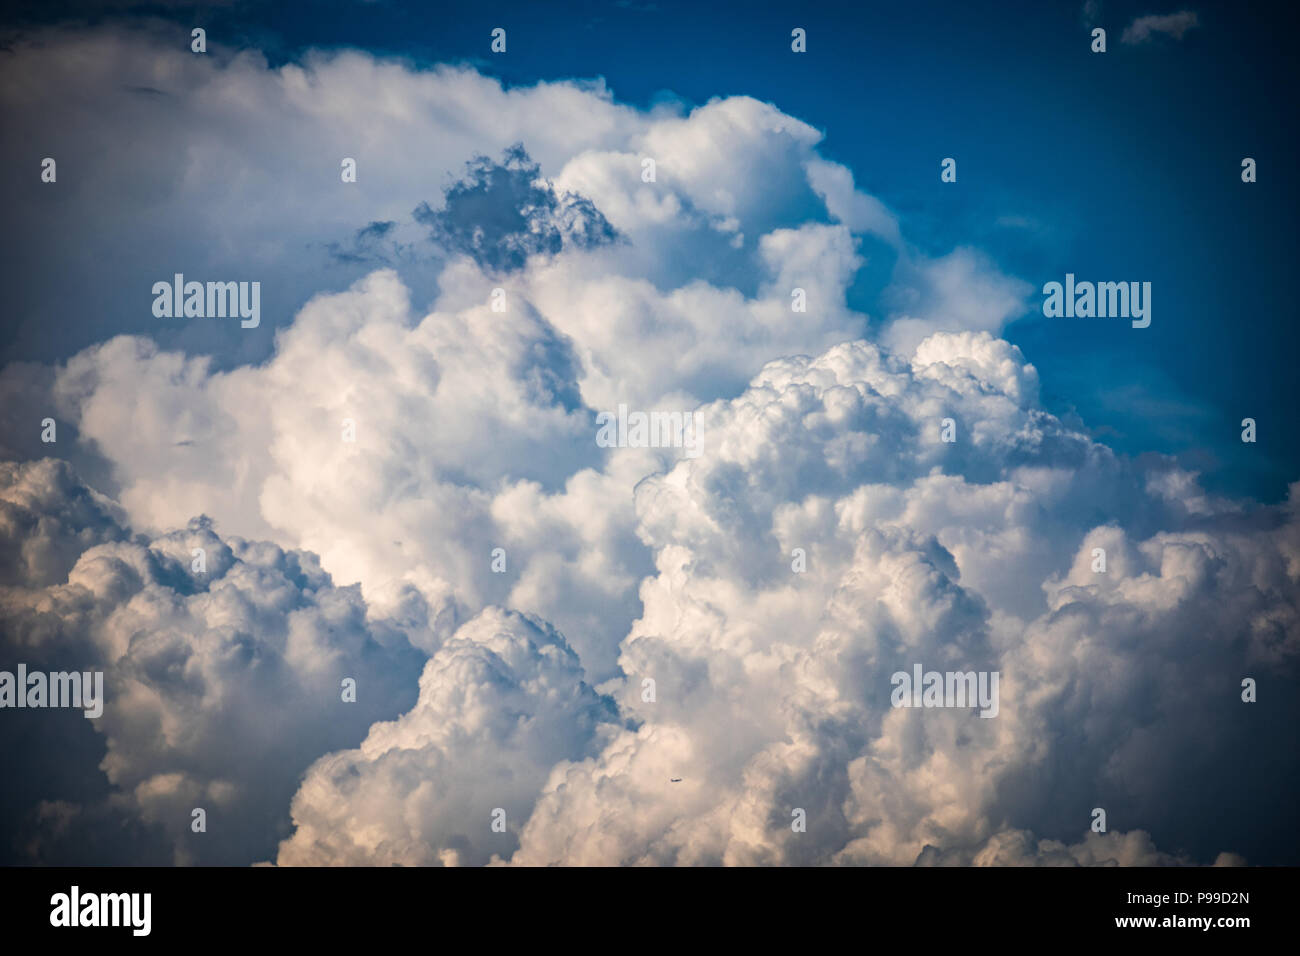 Las Vegas, NV - White Fluffy Clouds High In The Sky - Stock Image